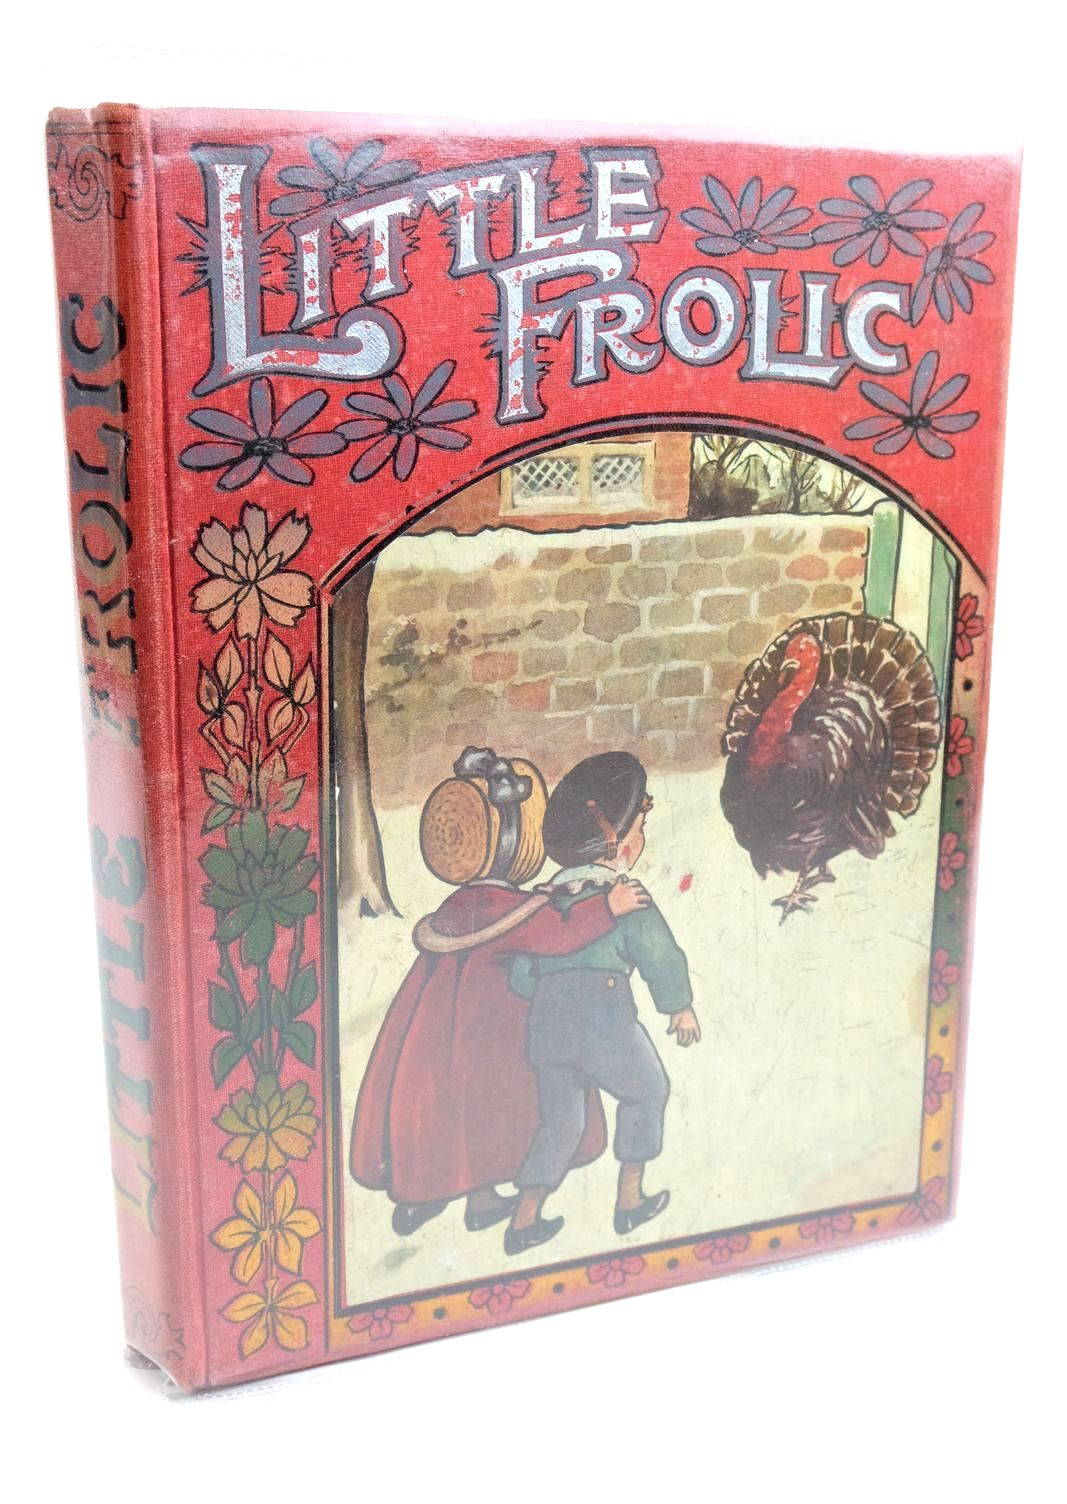 Photo of LITTLE FROLIC illustrated by Wain, Louis Etheridge, C. Wright, Alan Scott, Sybil et al.,  published by John F. Shaw & Co. (STOCK CODE: 1320893)  for sale by Stella & Rose's Books